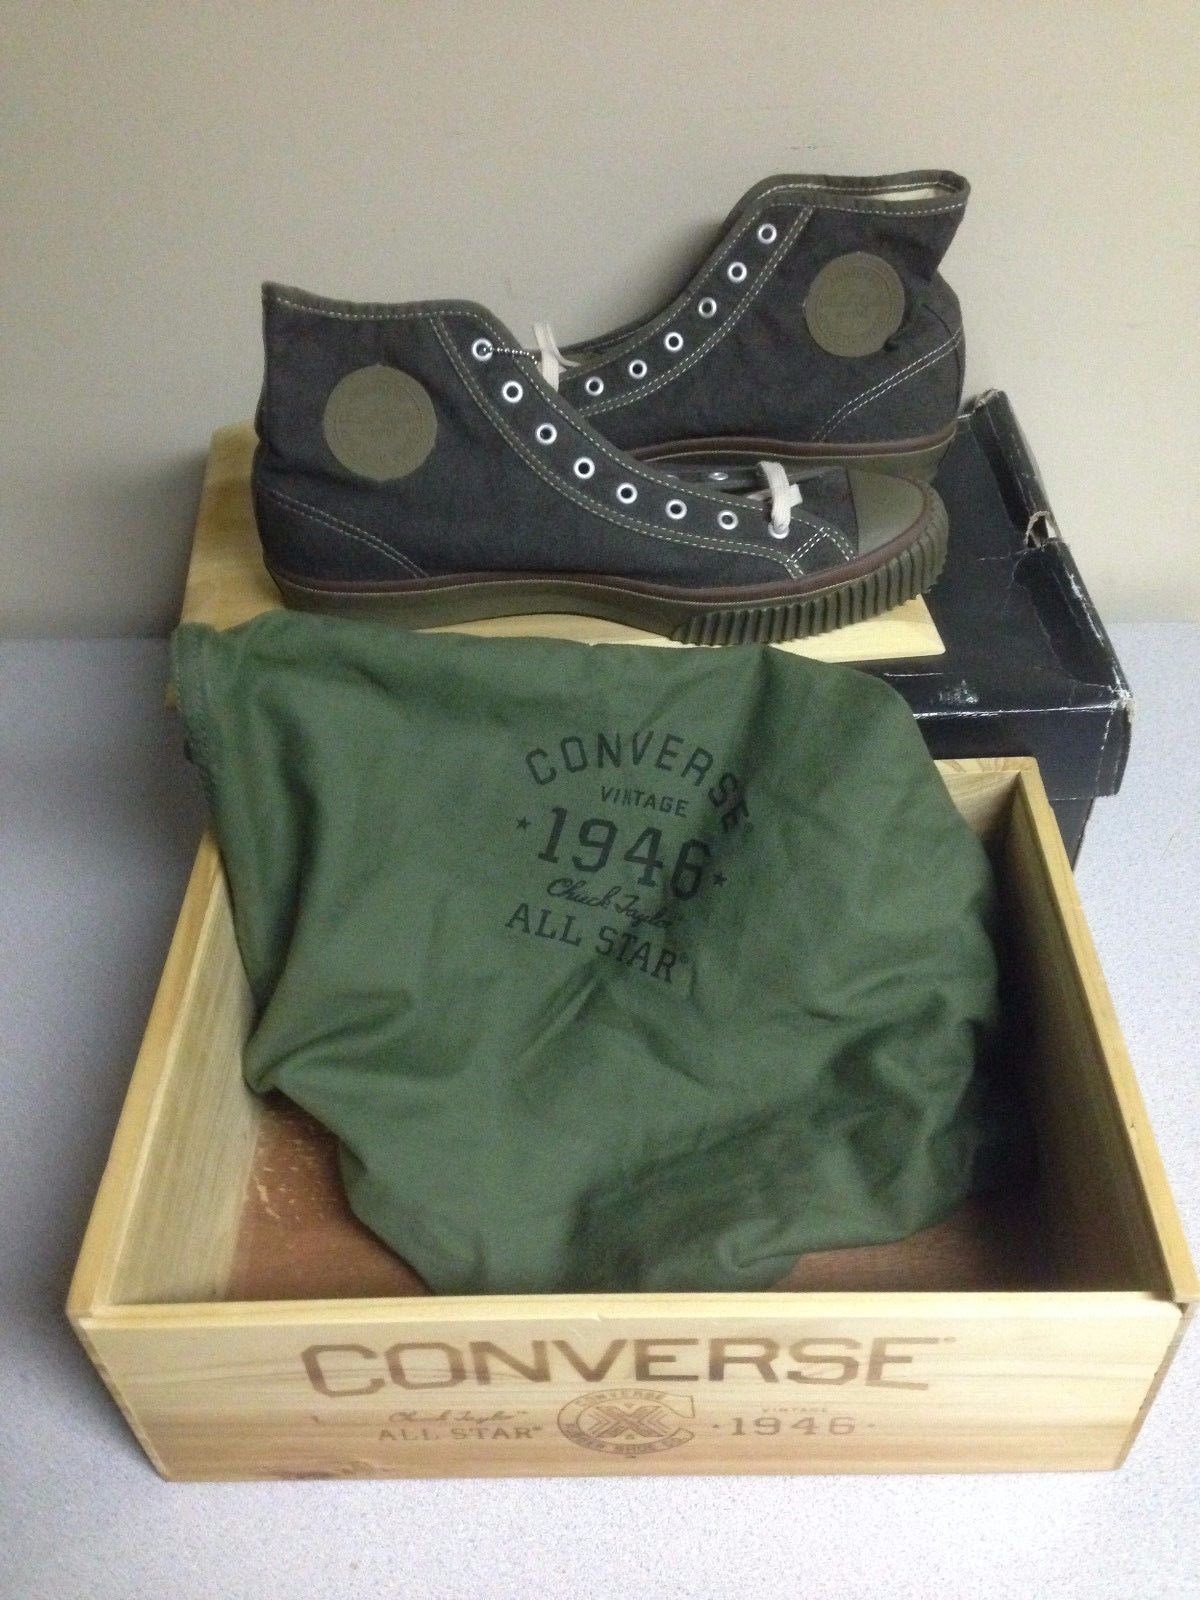 Converse Chuck Taylor All Star Vintage Limited Edition 1946 + Wood Box 50475 07ae82c05